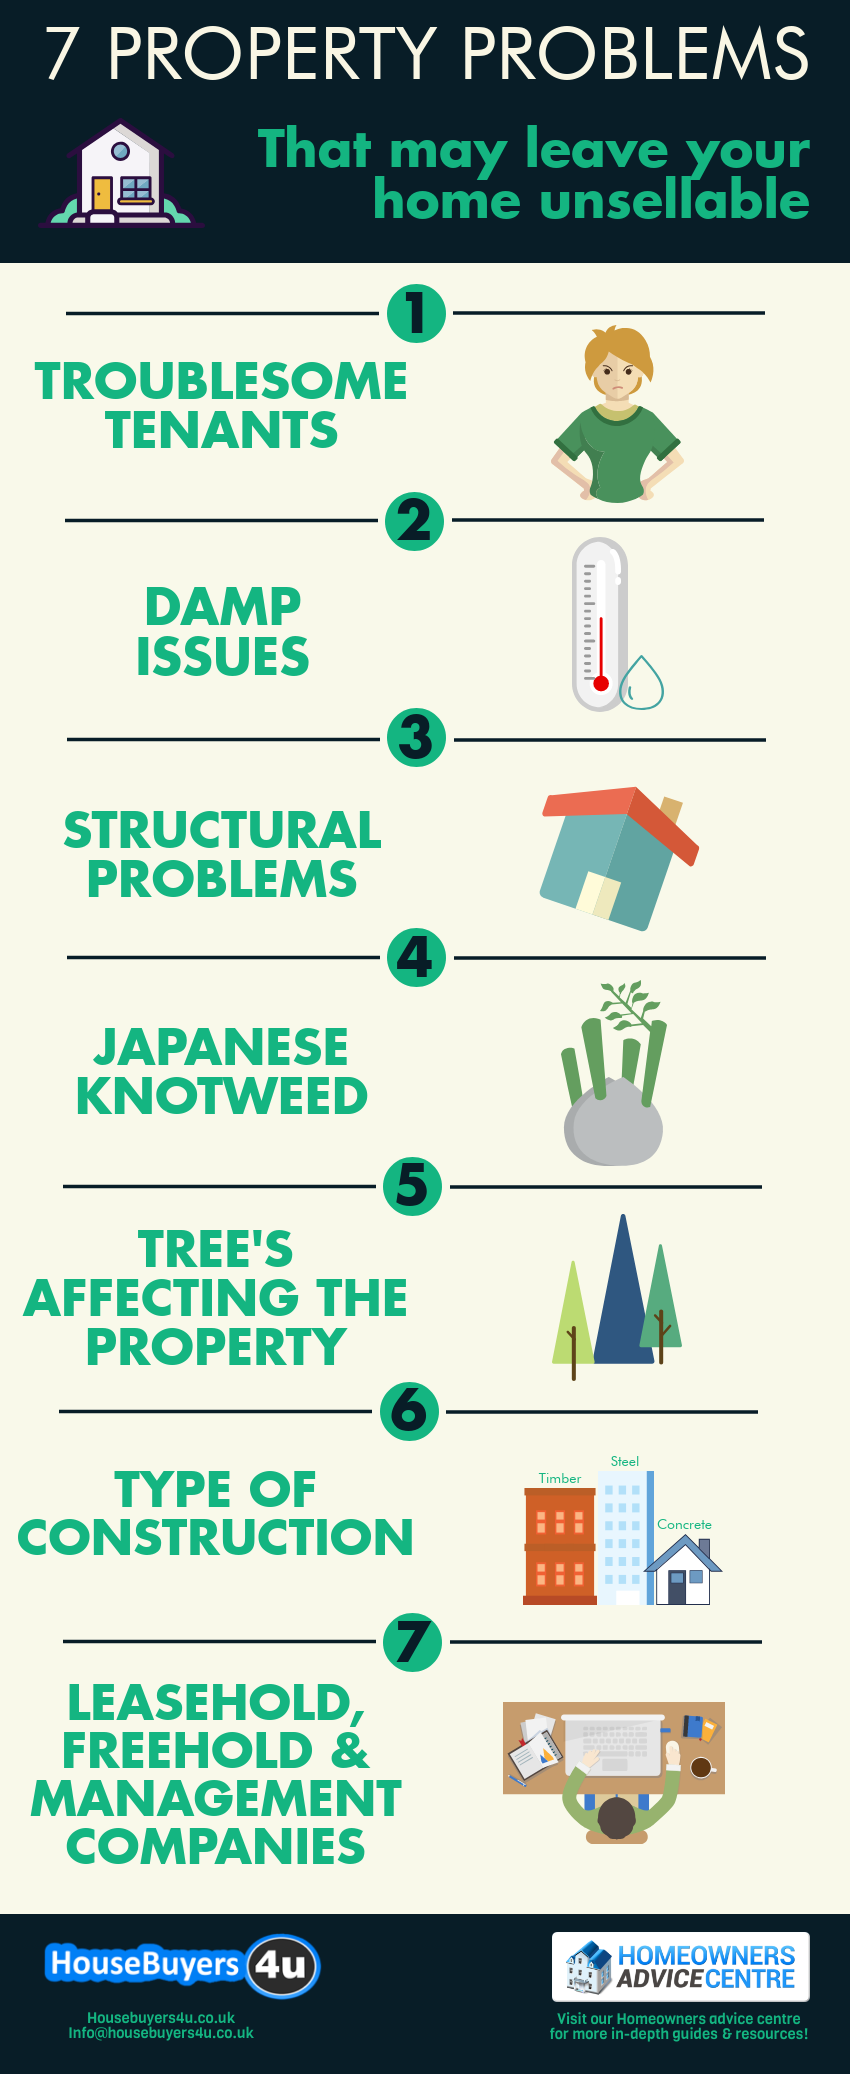 7 Property Problems that may leave your home unsellable infographic